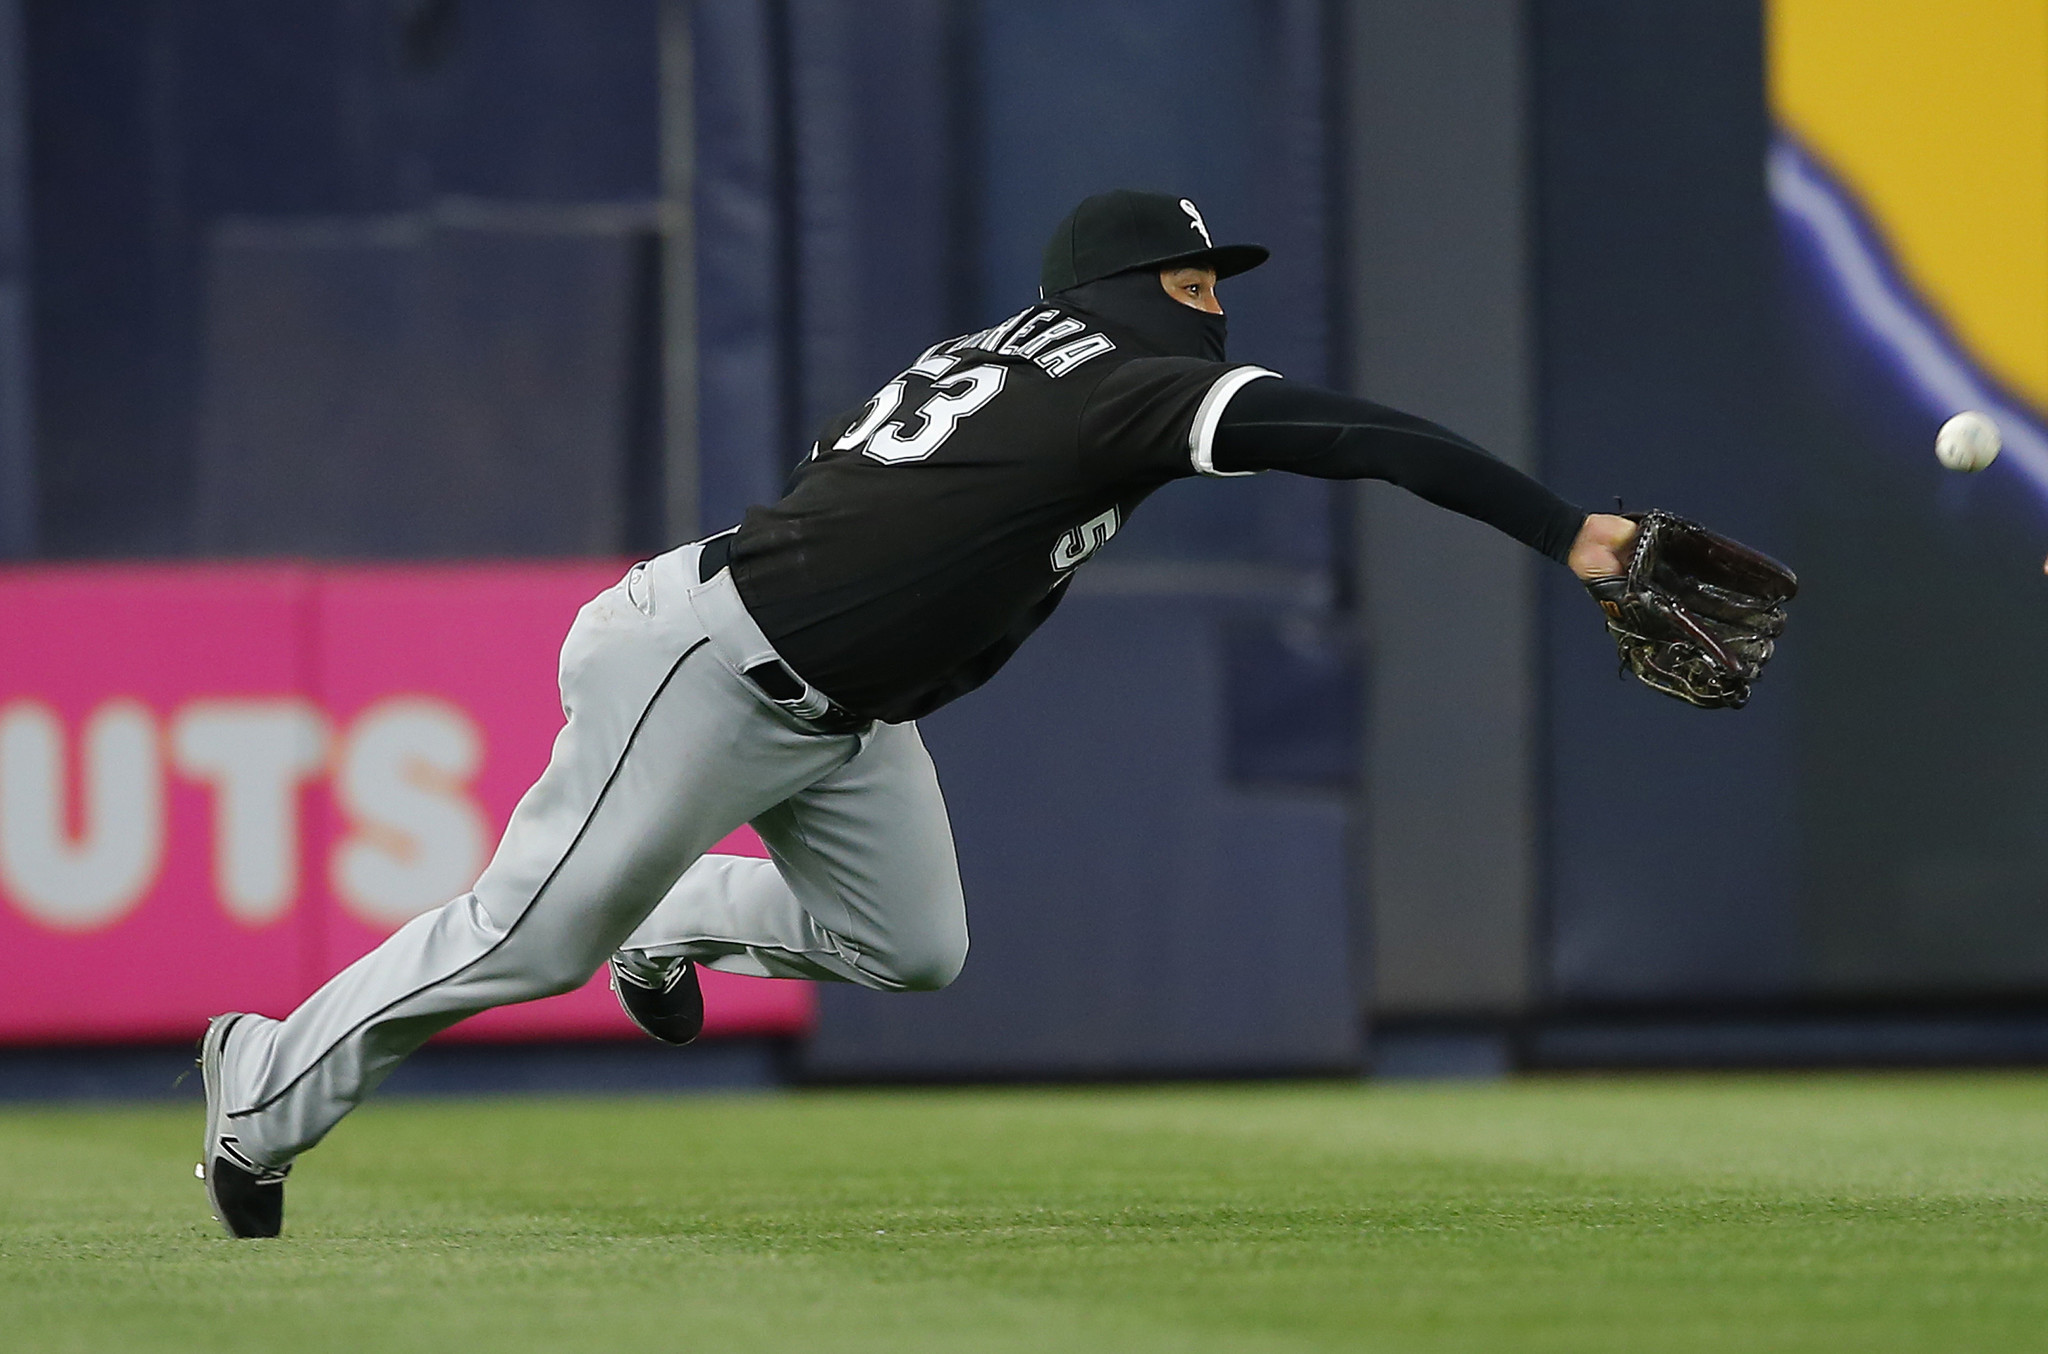 Three-hit game Wednesday night was music to Jose Abreu's ears